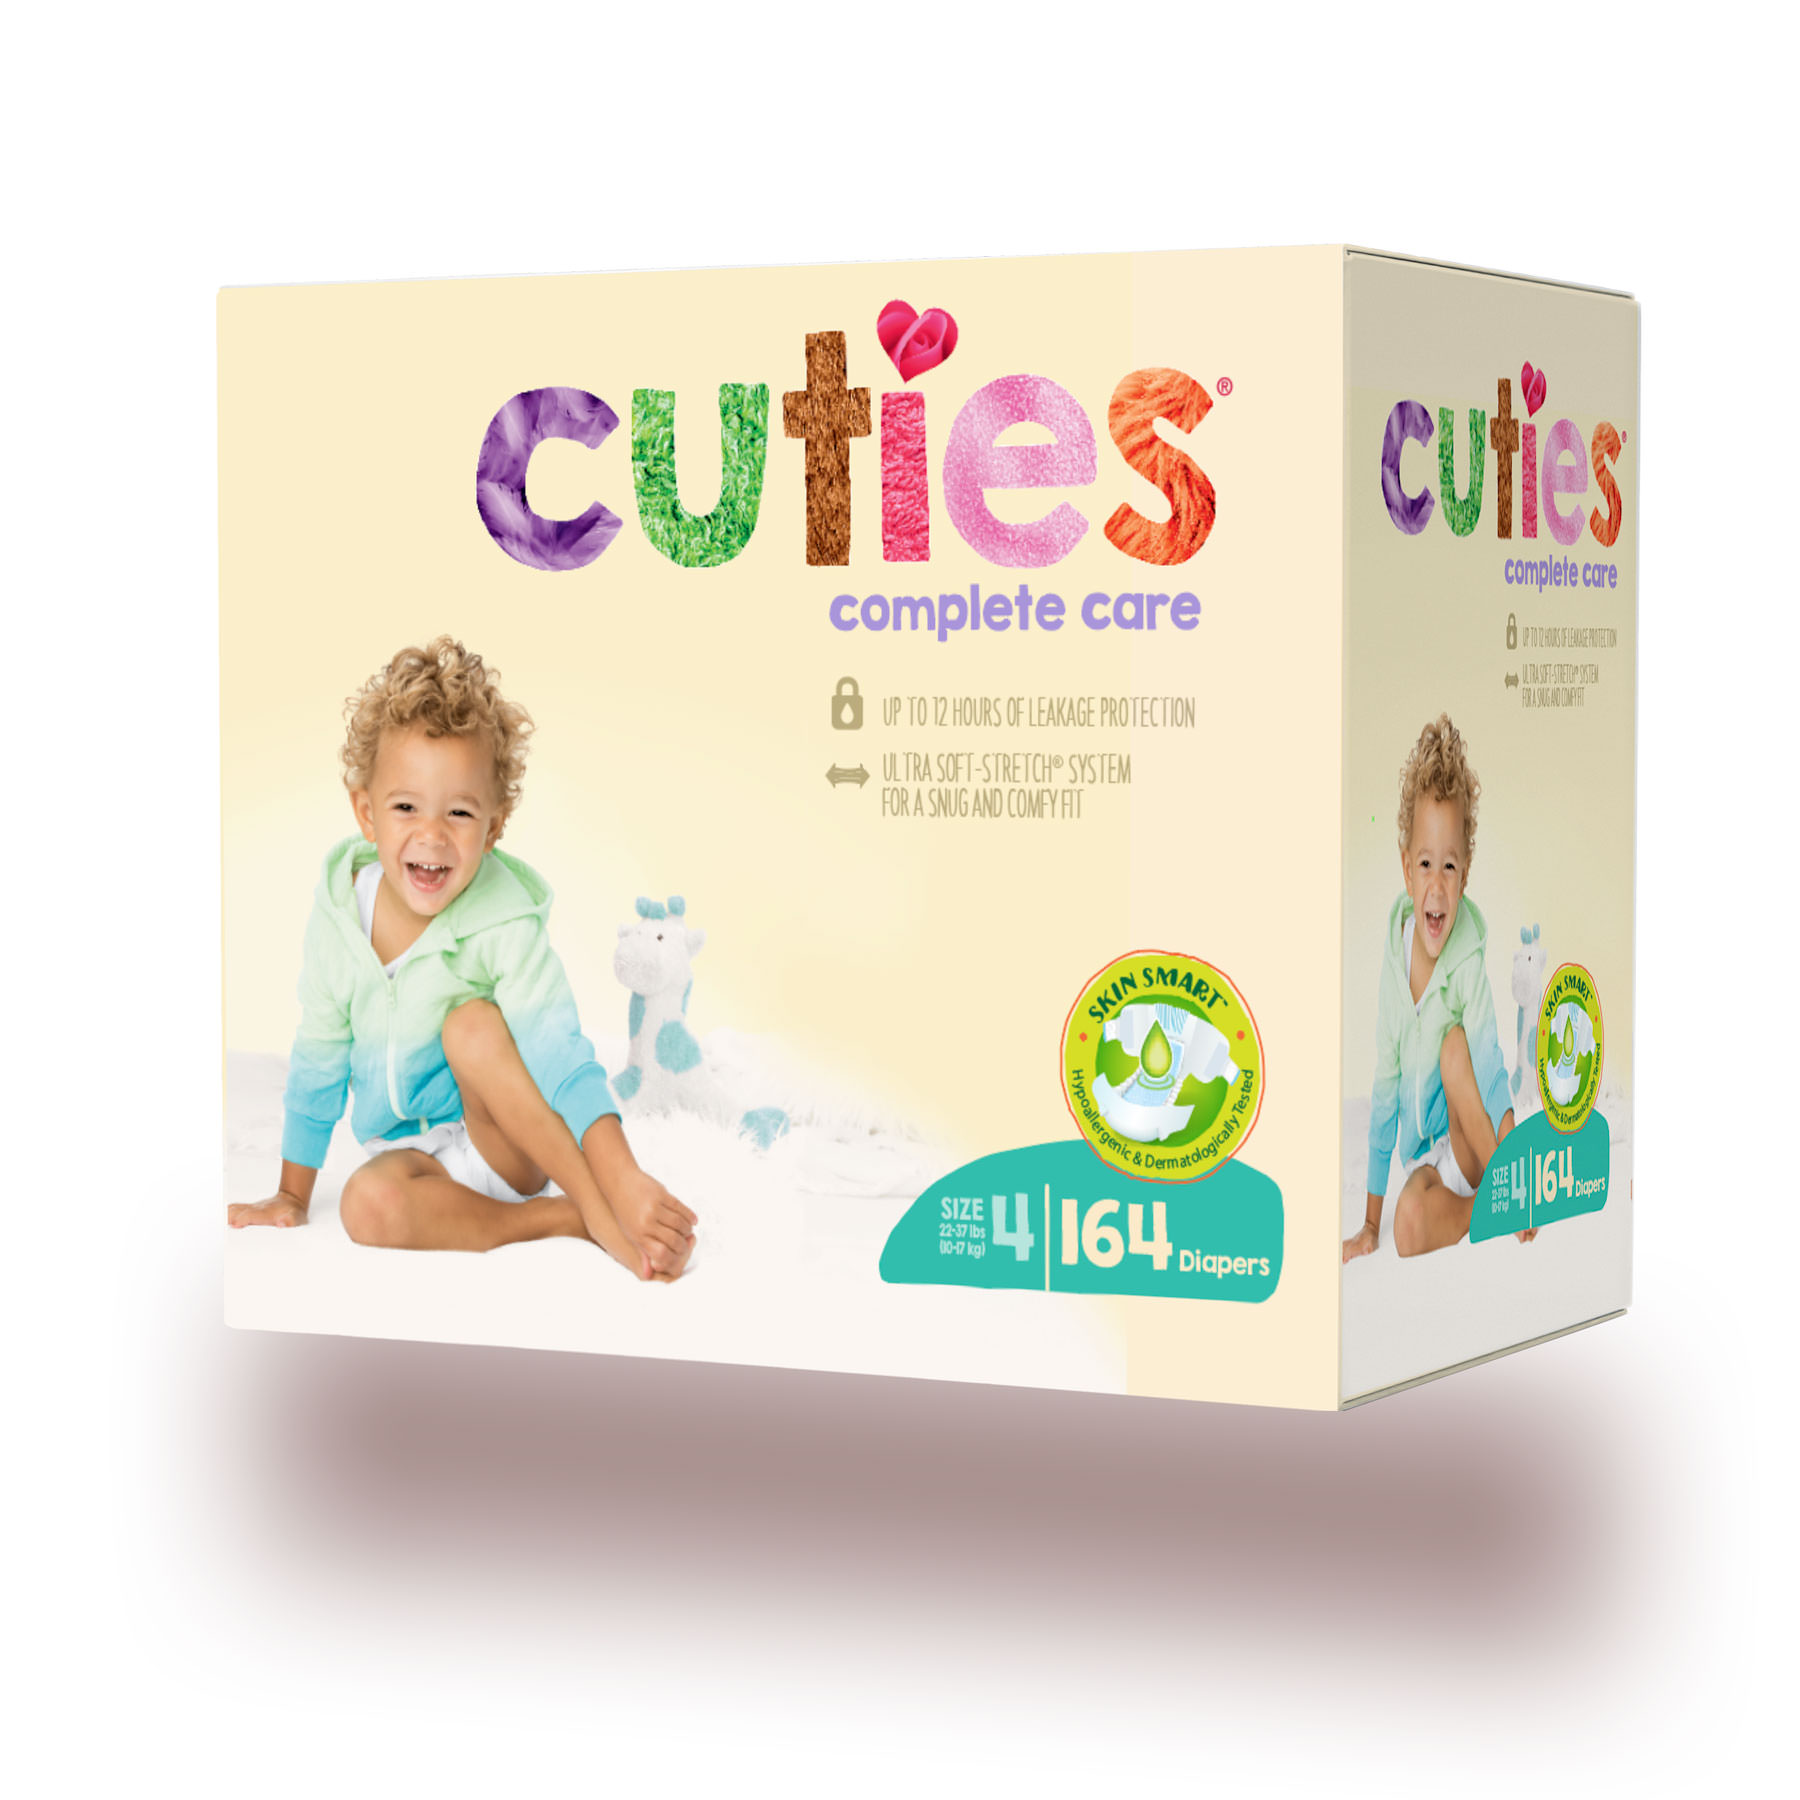 Cuties Complete Care Baby Diapers (Choose Size and Count)